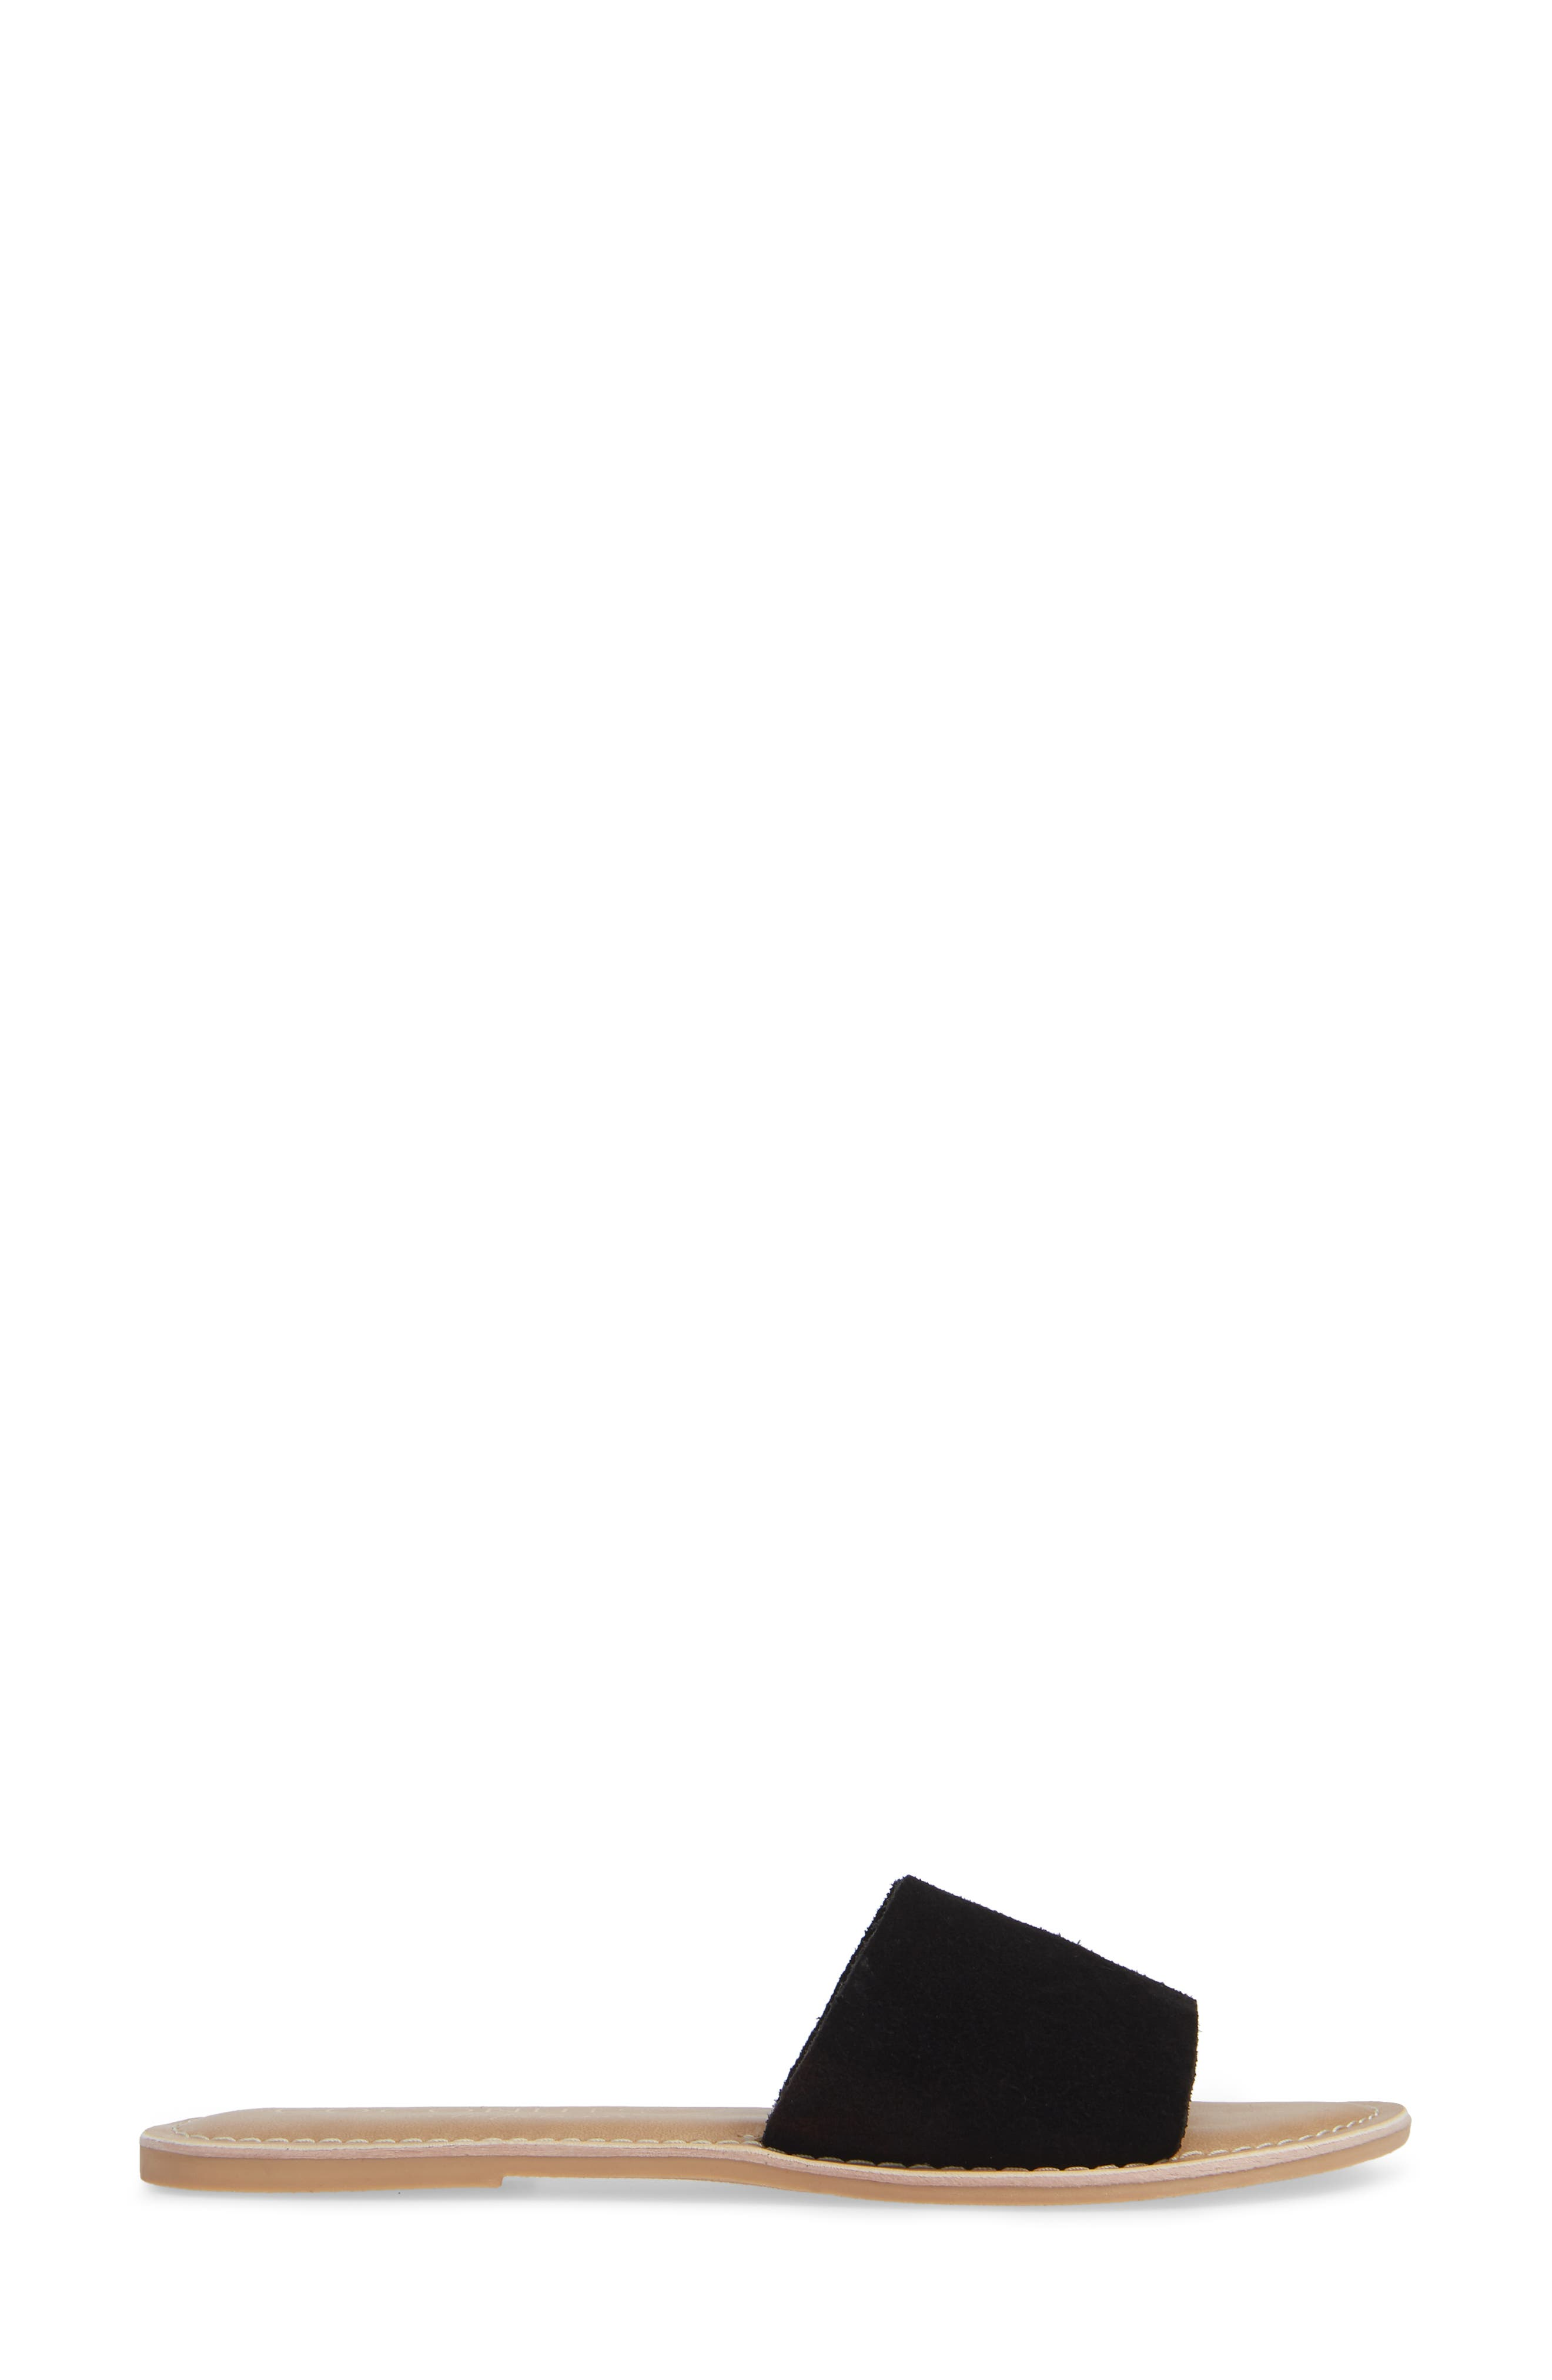 Cabana Slide Sandal,                             Alternate thumbnail 3, color,                             BLACK SUEDE